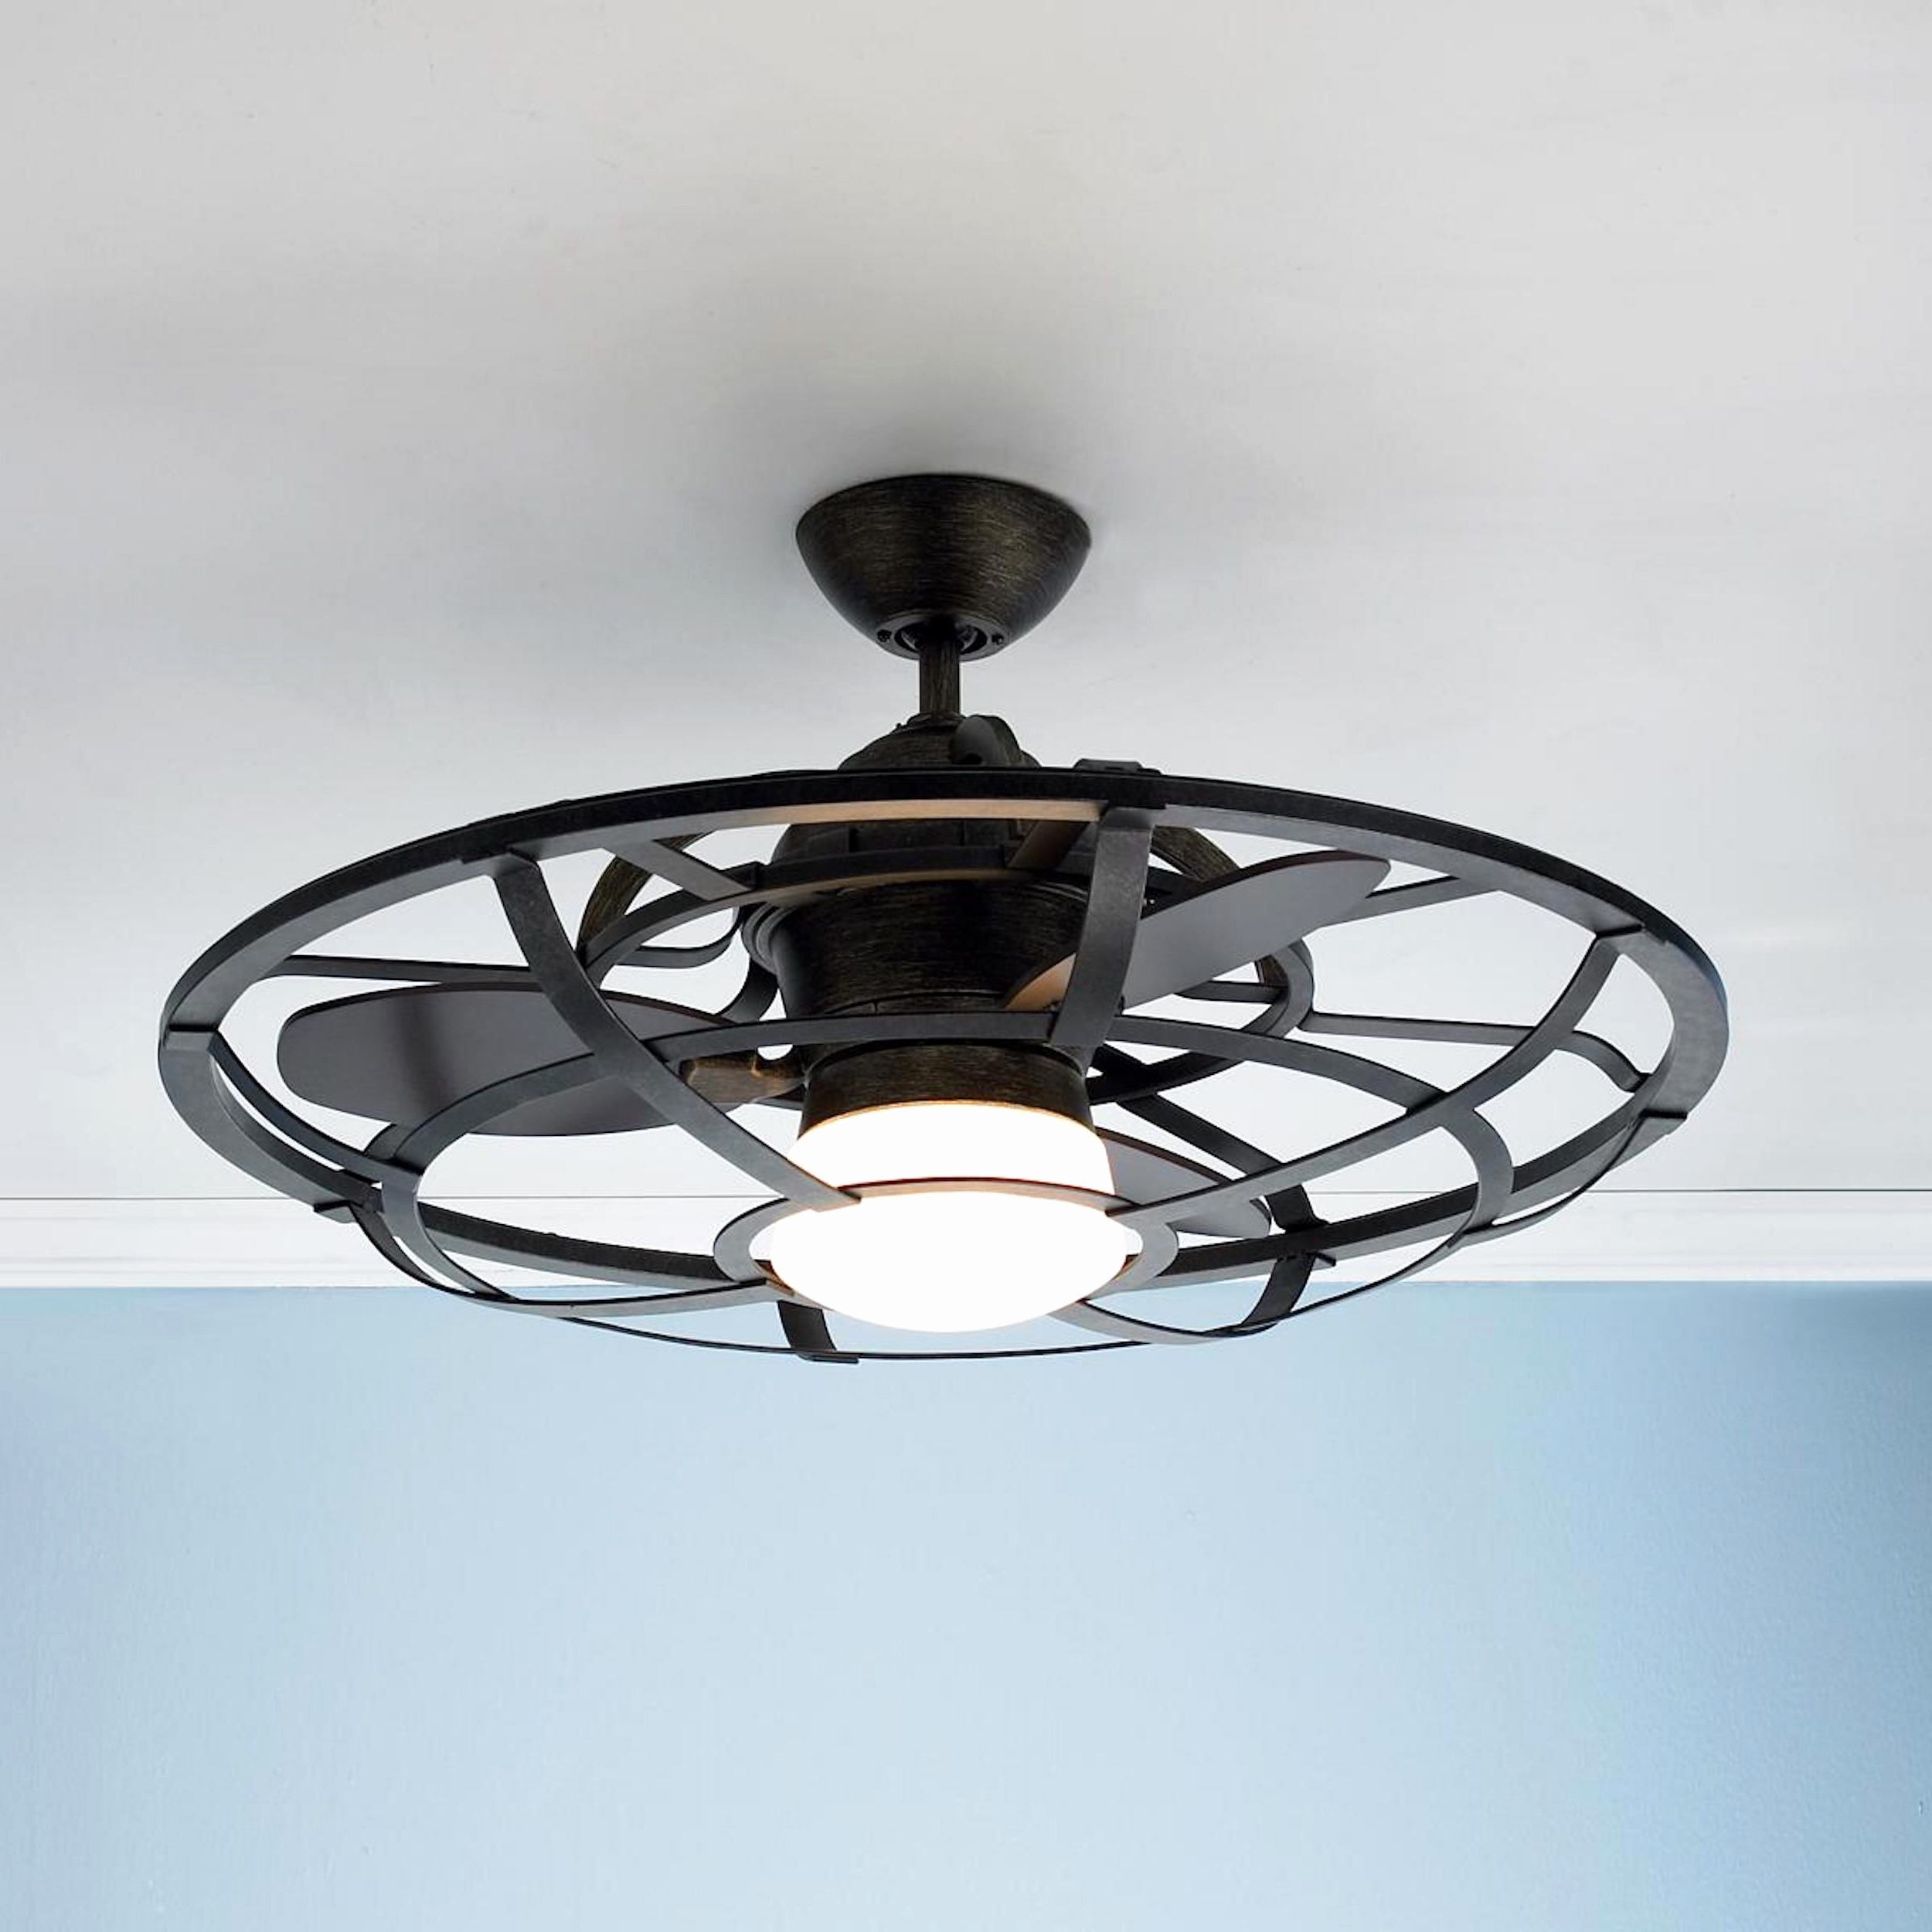 Industrial Style Ceiling Fans View Photos Of Outdoor Ceiling Fans With Lantern Showing 14 Of 20